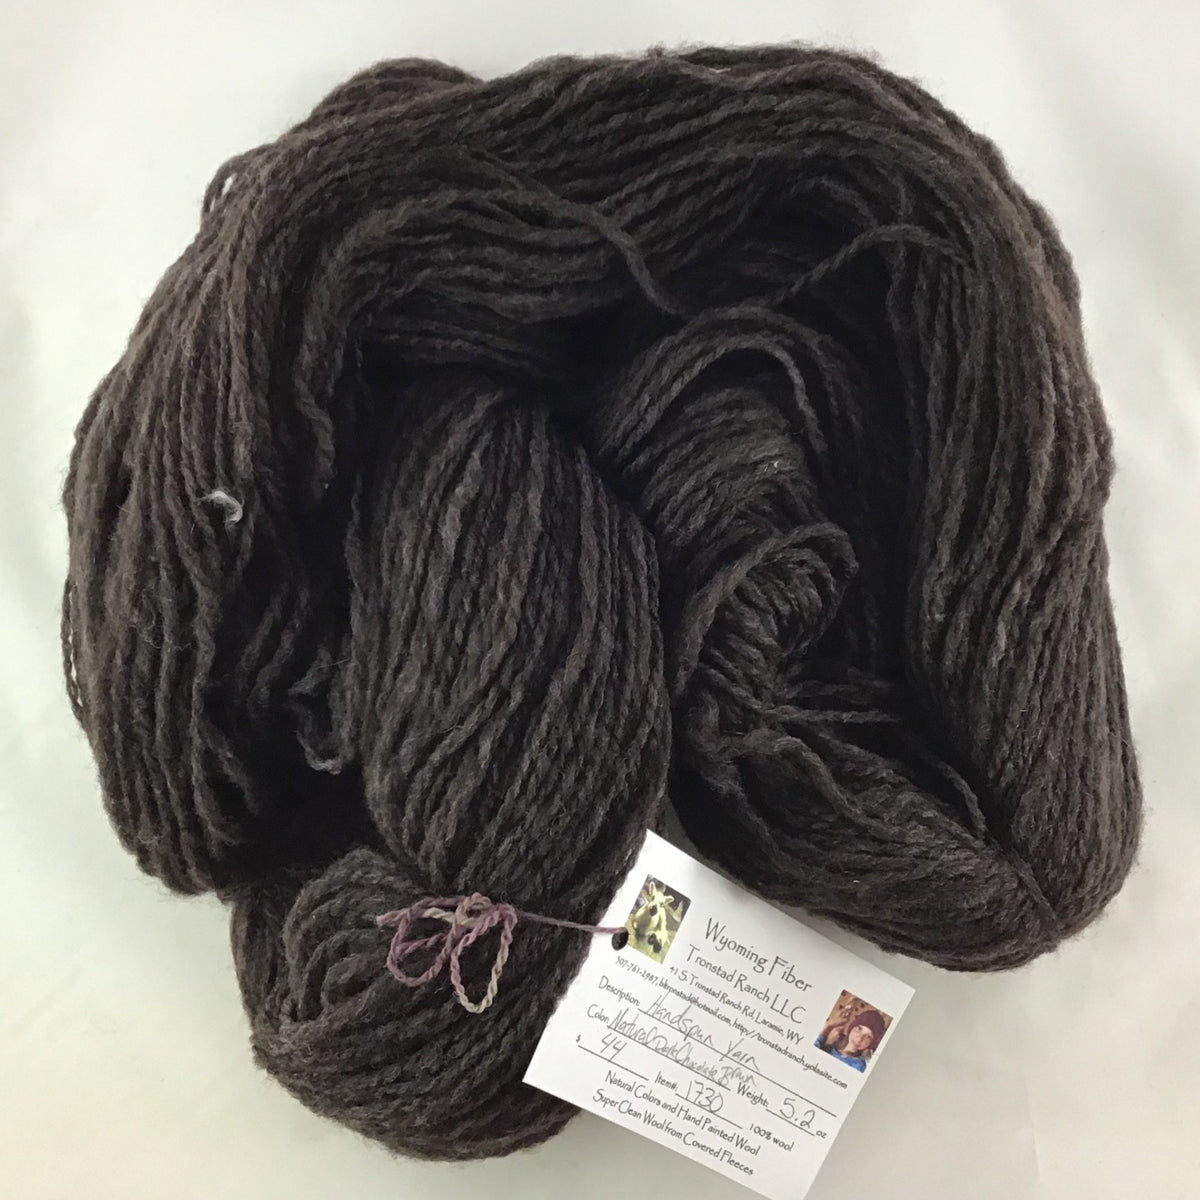 Tronstad Ranch Handspun Natural Dark Chocolate Brown 5.2oz